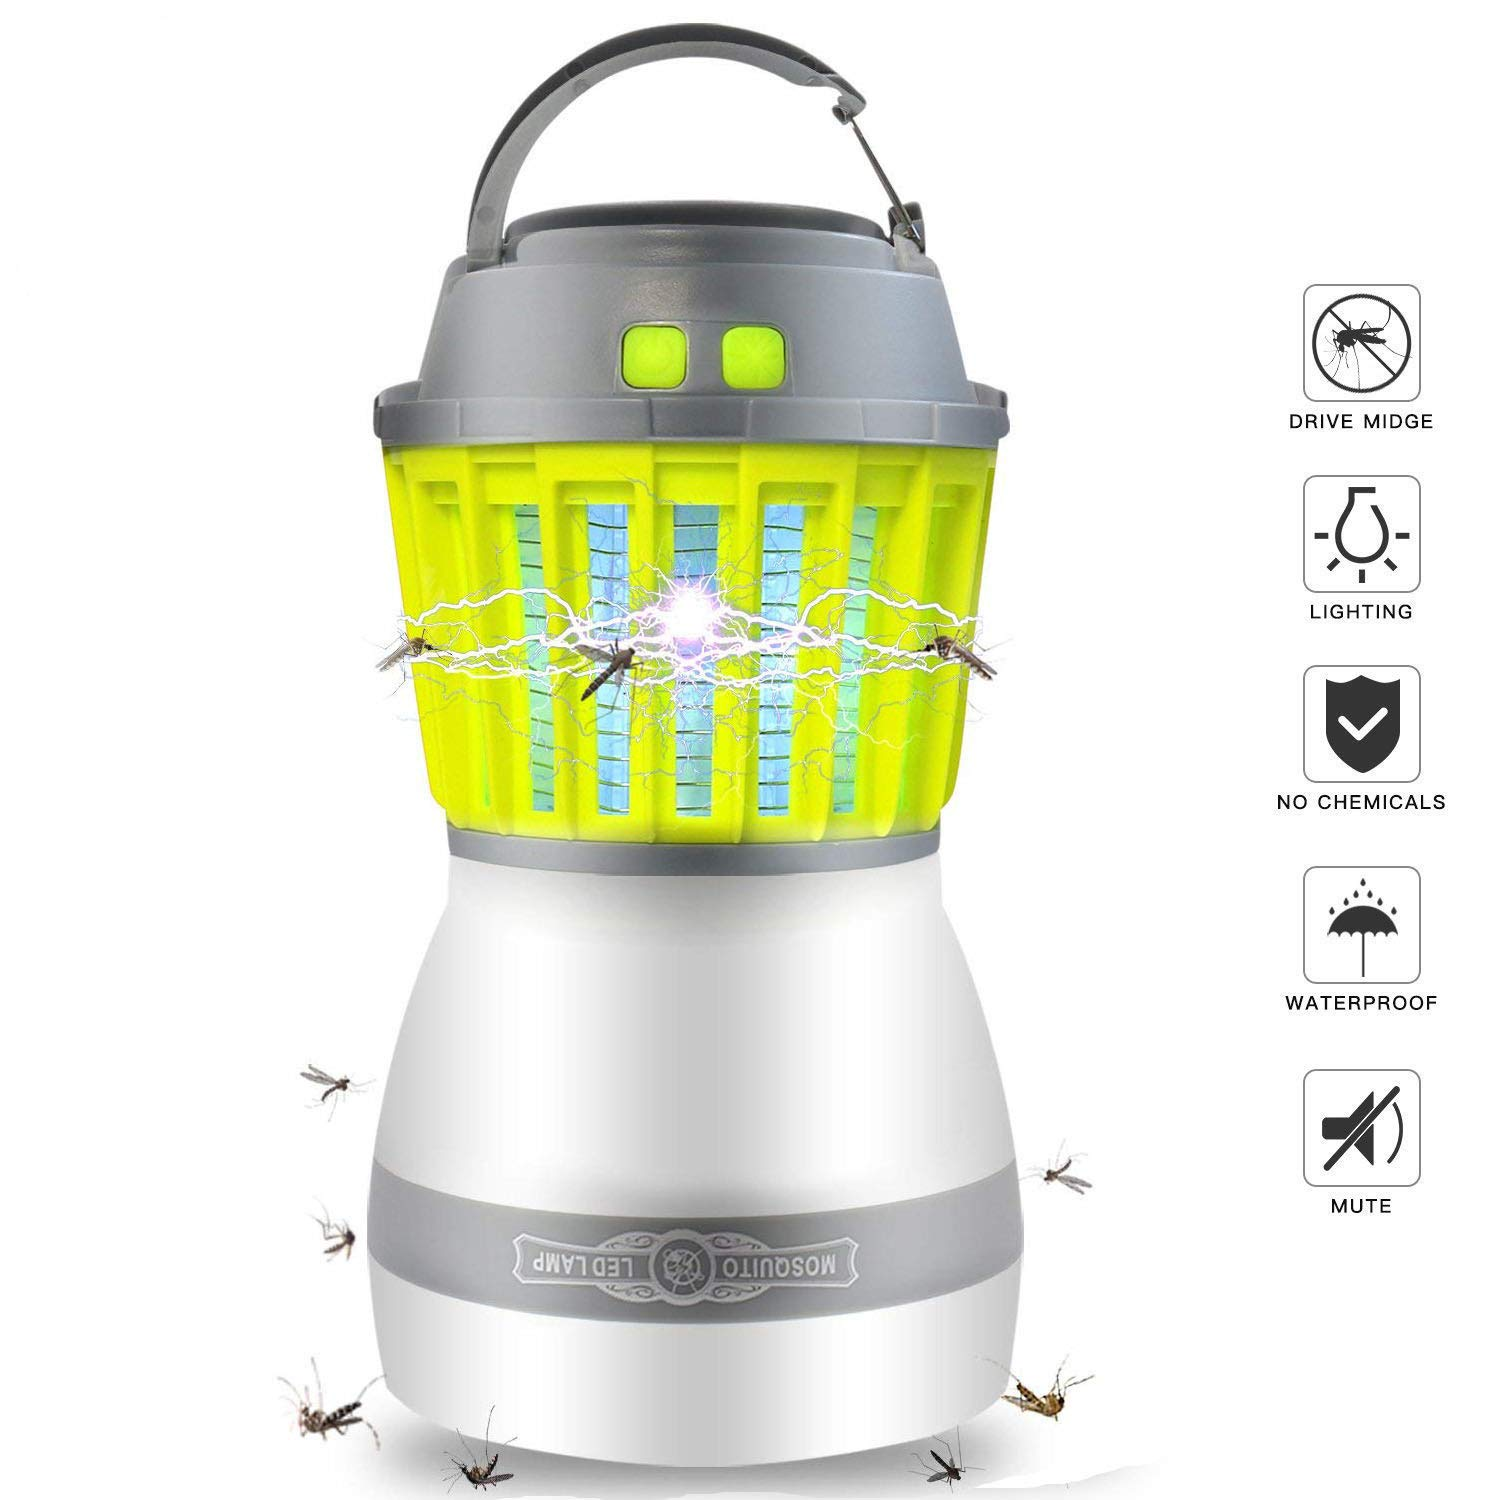 Bug Zapper & Camping Lantern 2 in 1, Electric Mosquito Trap Killer with LED Light, IP67 Waterproof Rechargable Via USB - Cordless Portable Camping Accessories for The Indoor & Outdoor